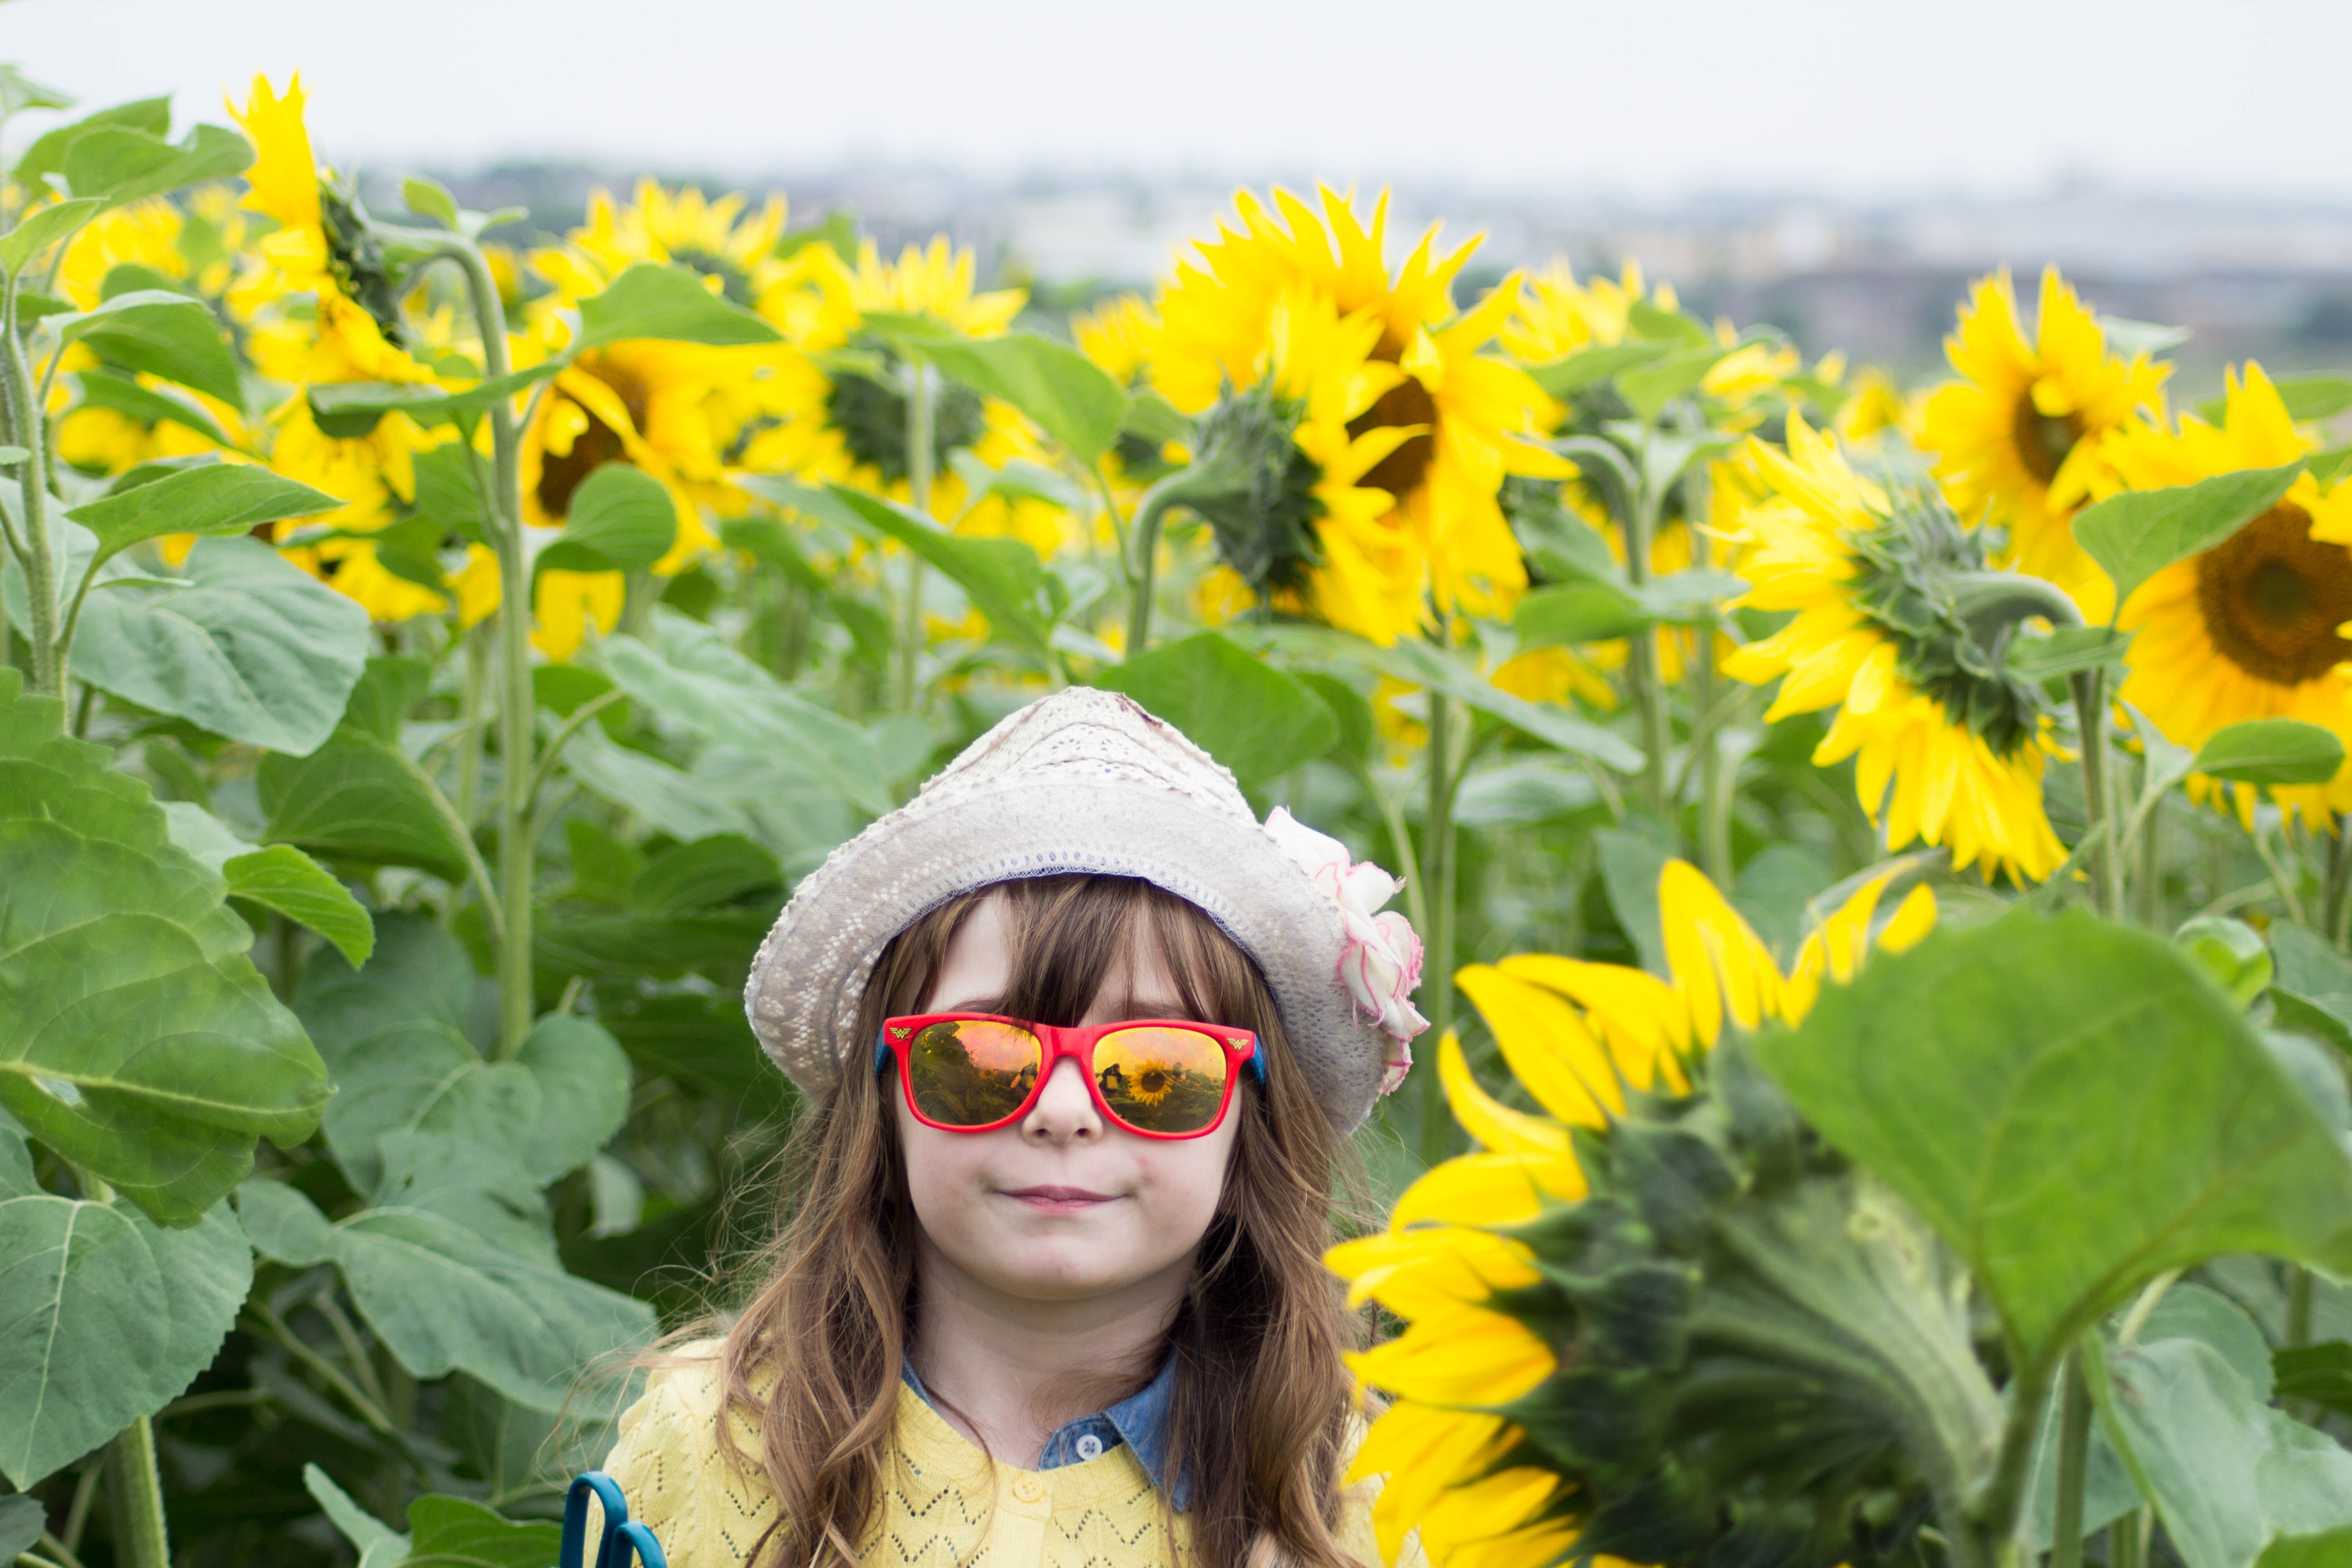 girl wearing red framed sunglasses and white hat surrounded by yellow sunflowers during daytime